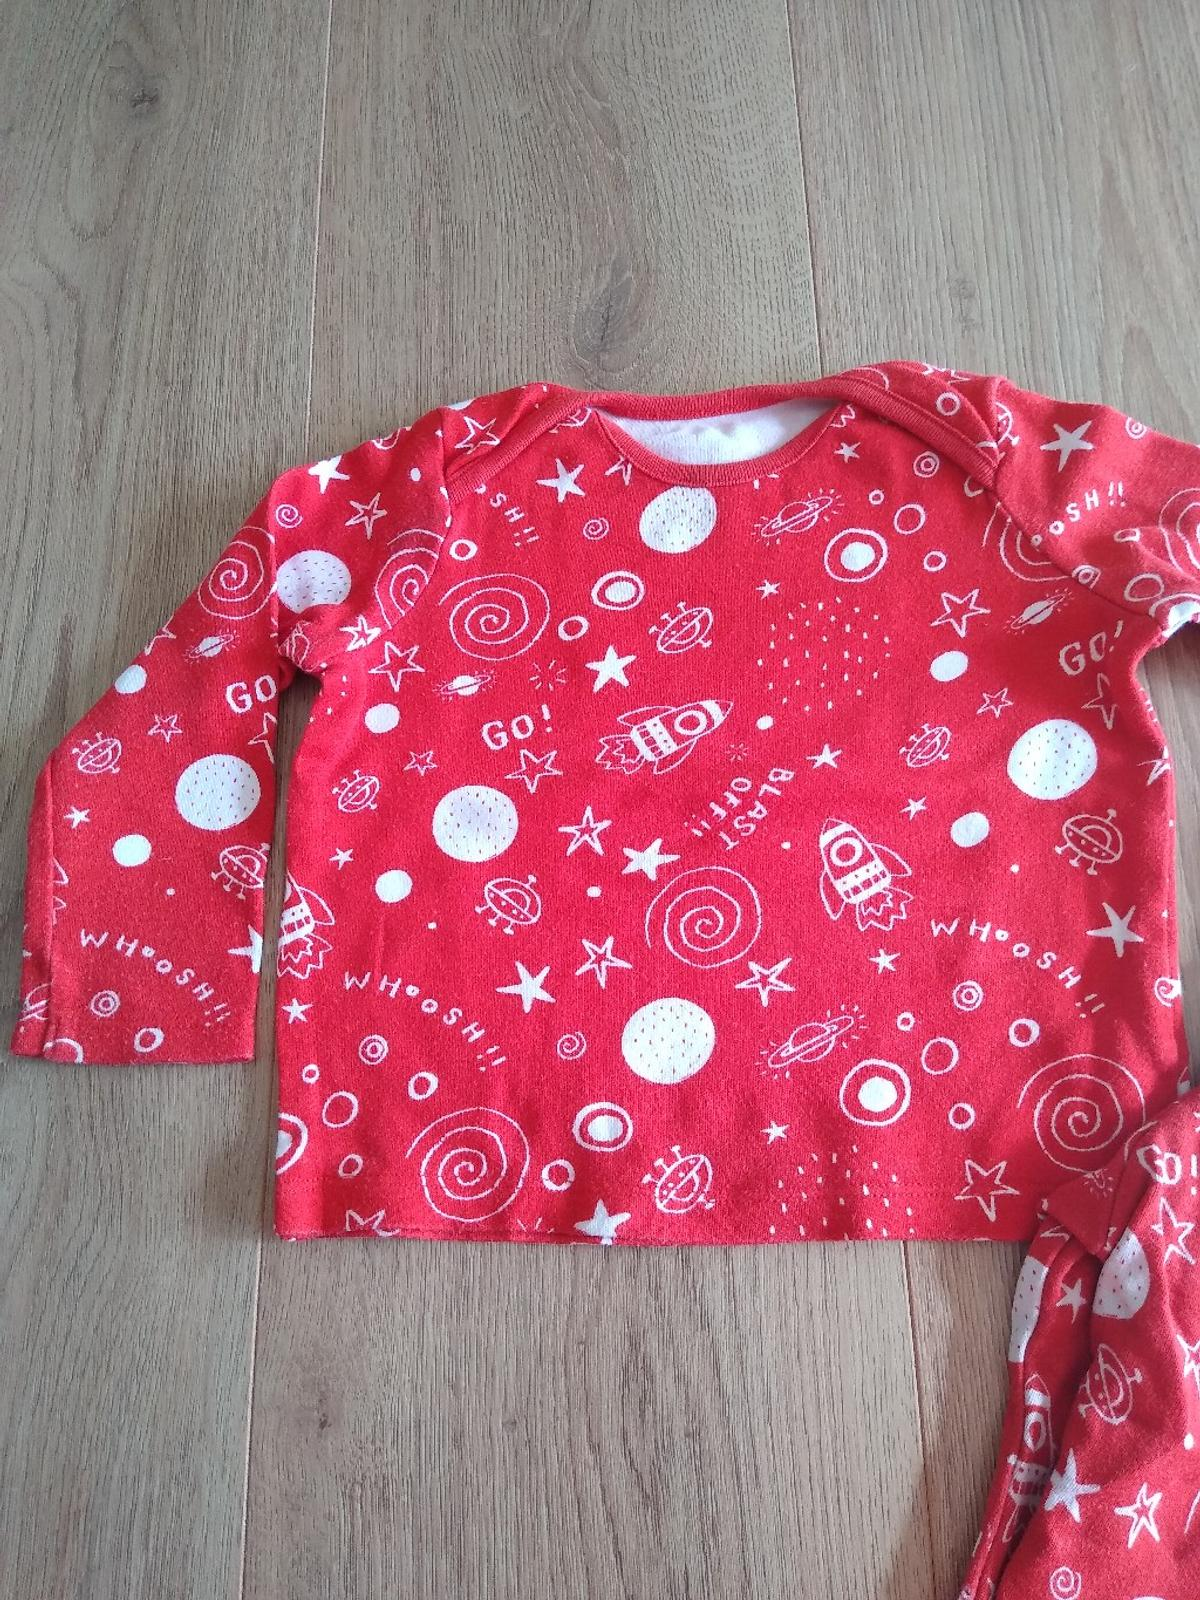 used pyjama in good condition ,had slightly mark next to neck but not really visible - see picture size 12-18 months from F&F collection Bootle or I can deliver if local or for a small fee to the different area postage available please see my other items lots baby clothes